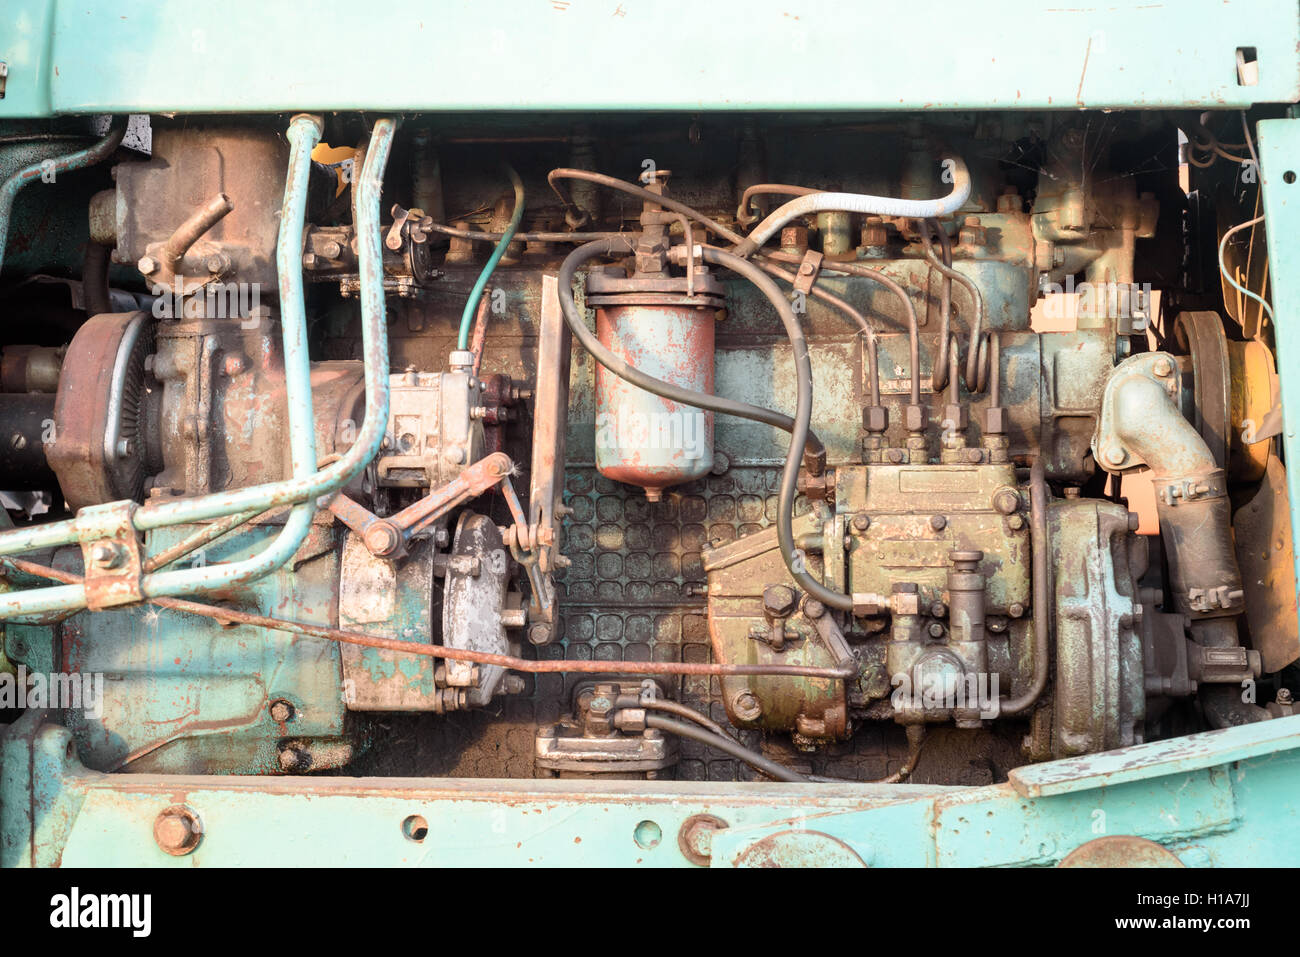 Old worn engine block of a large industrial machine in color showing the machines parts and fittings. - Stock Image